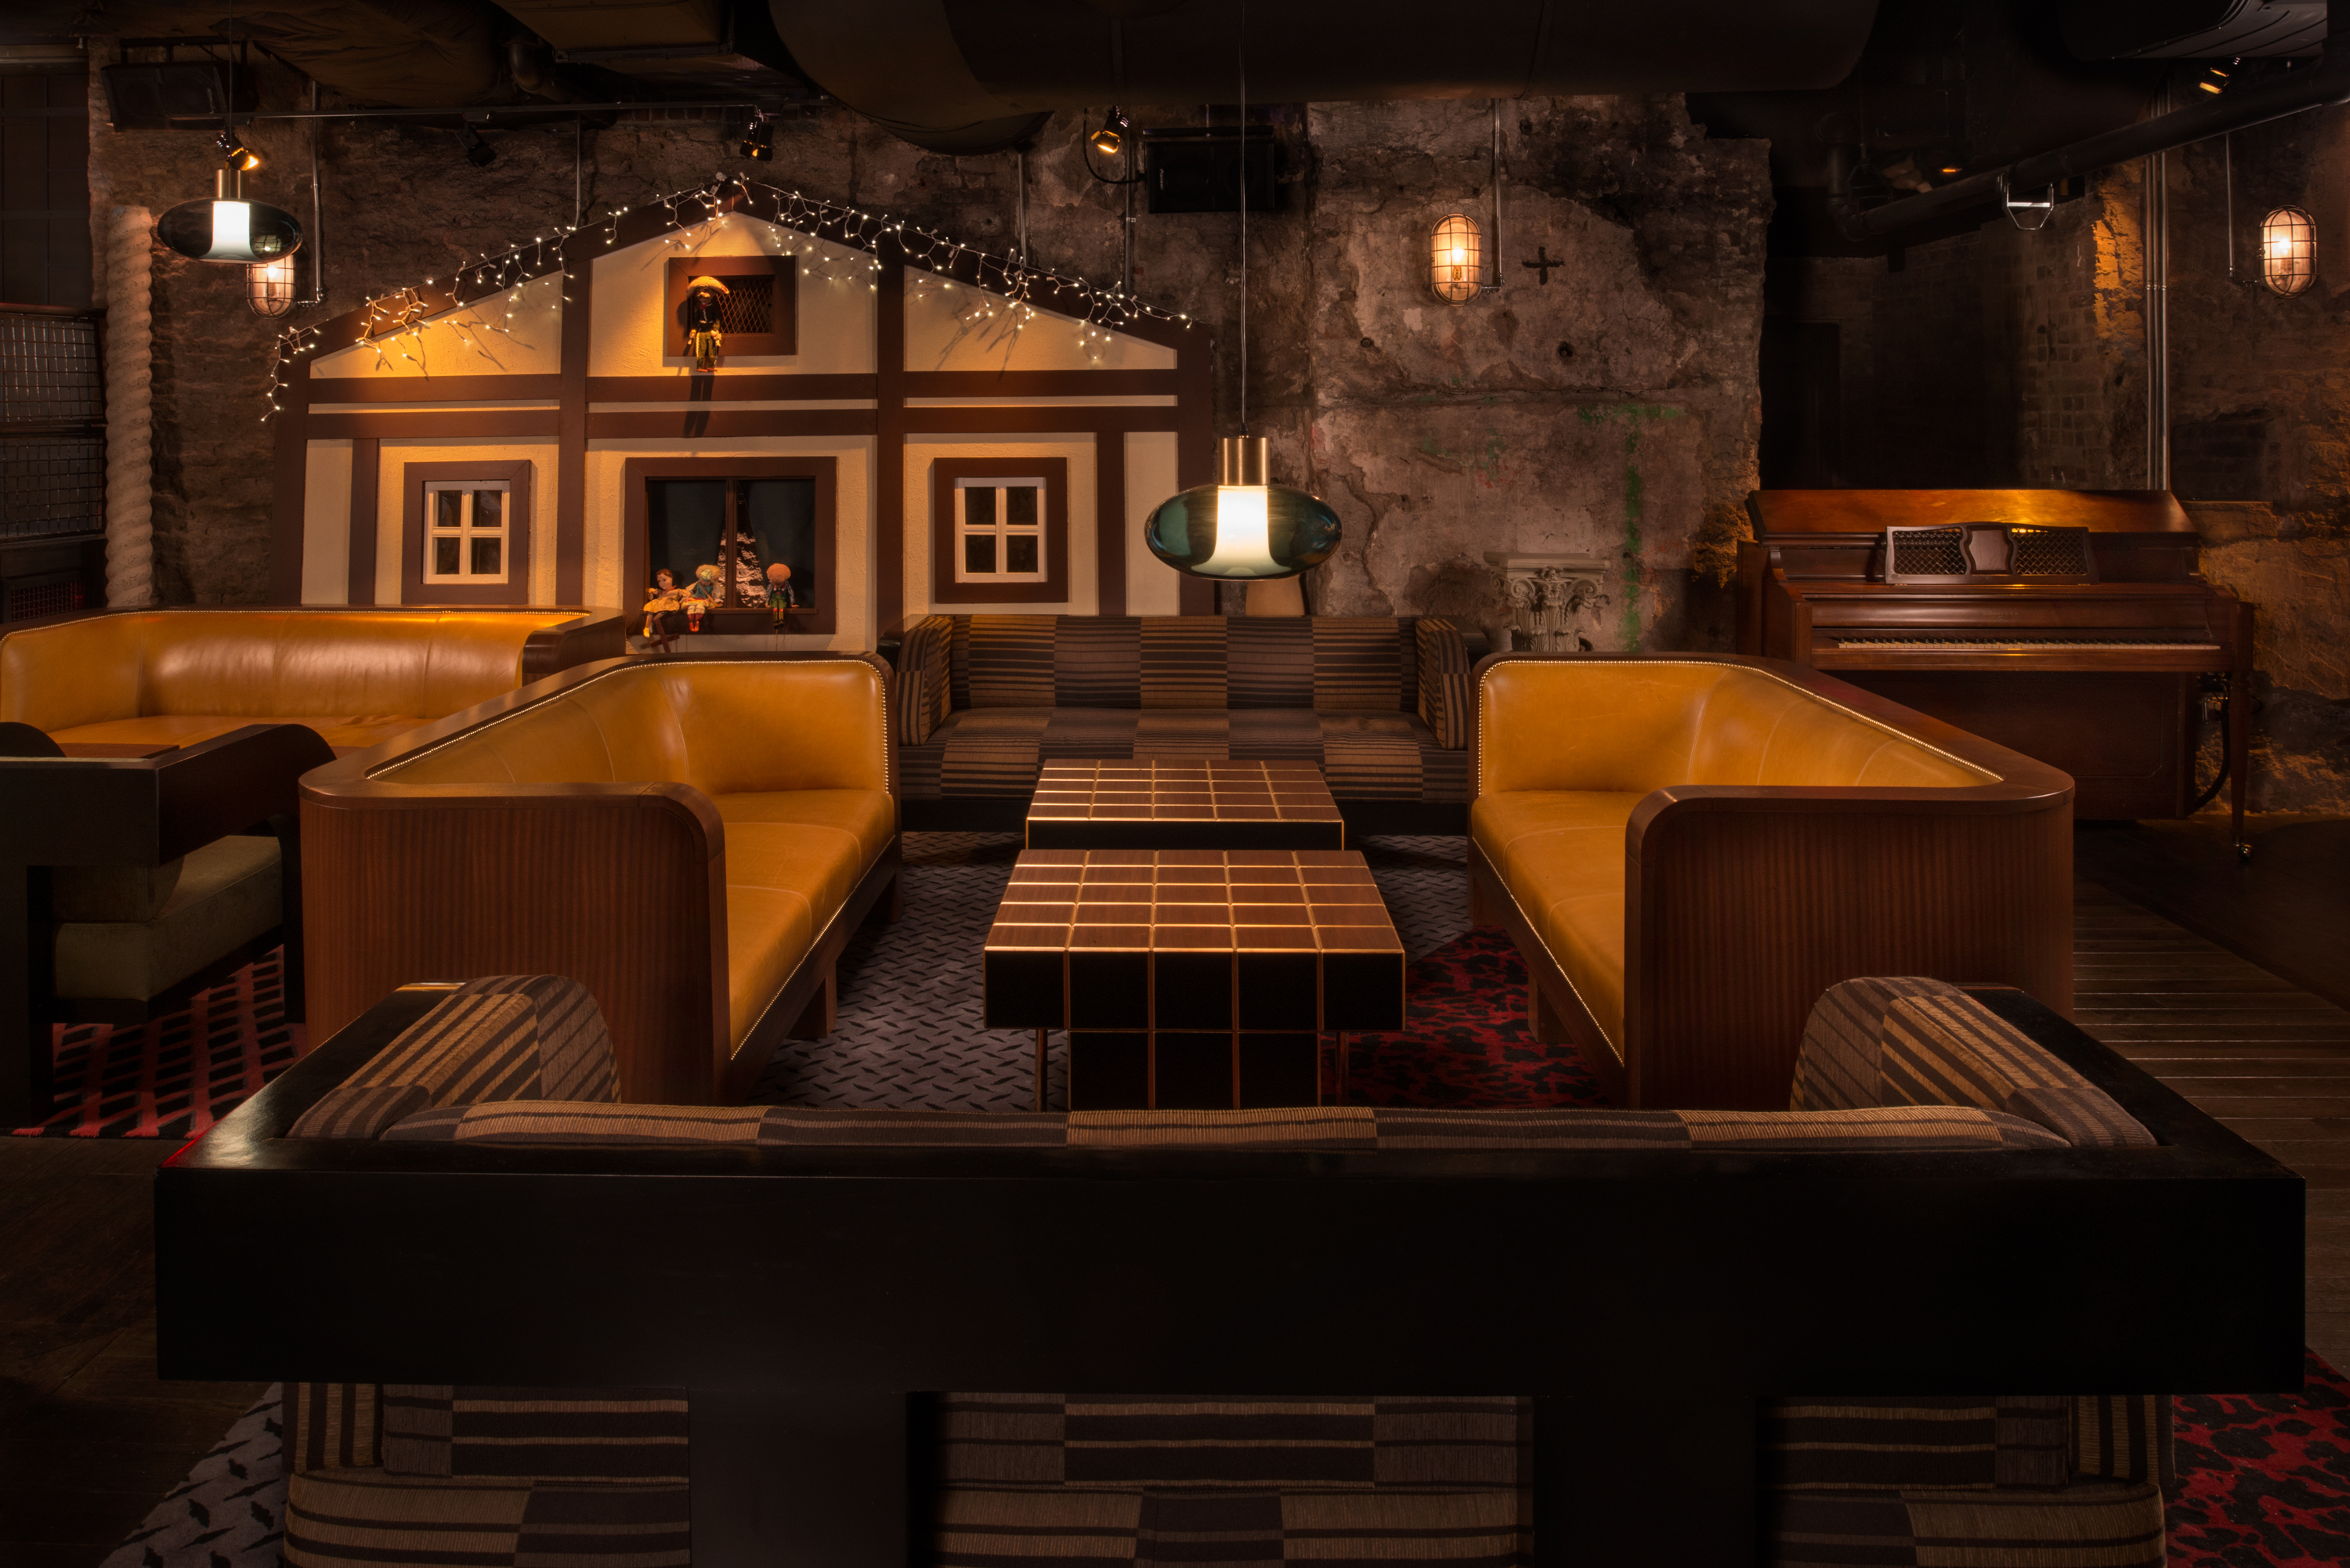 2317a4e21b3 The Alley Cat Amateur Theatre  NYC S coolest new bar